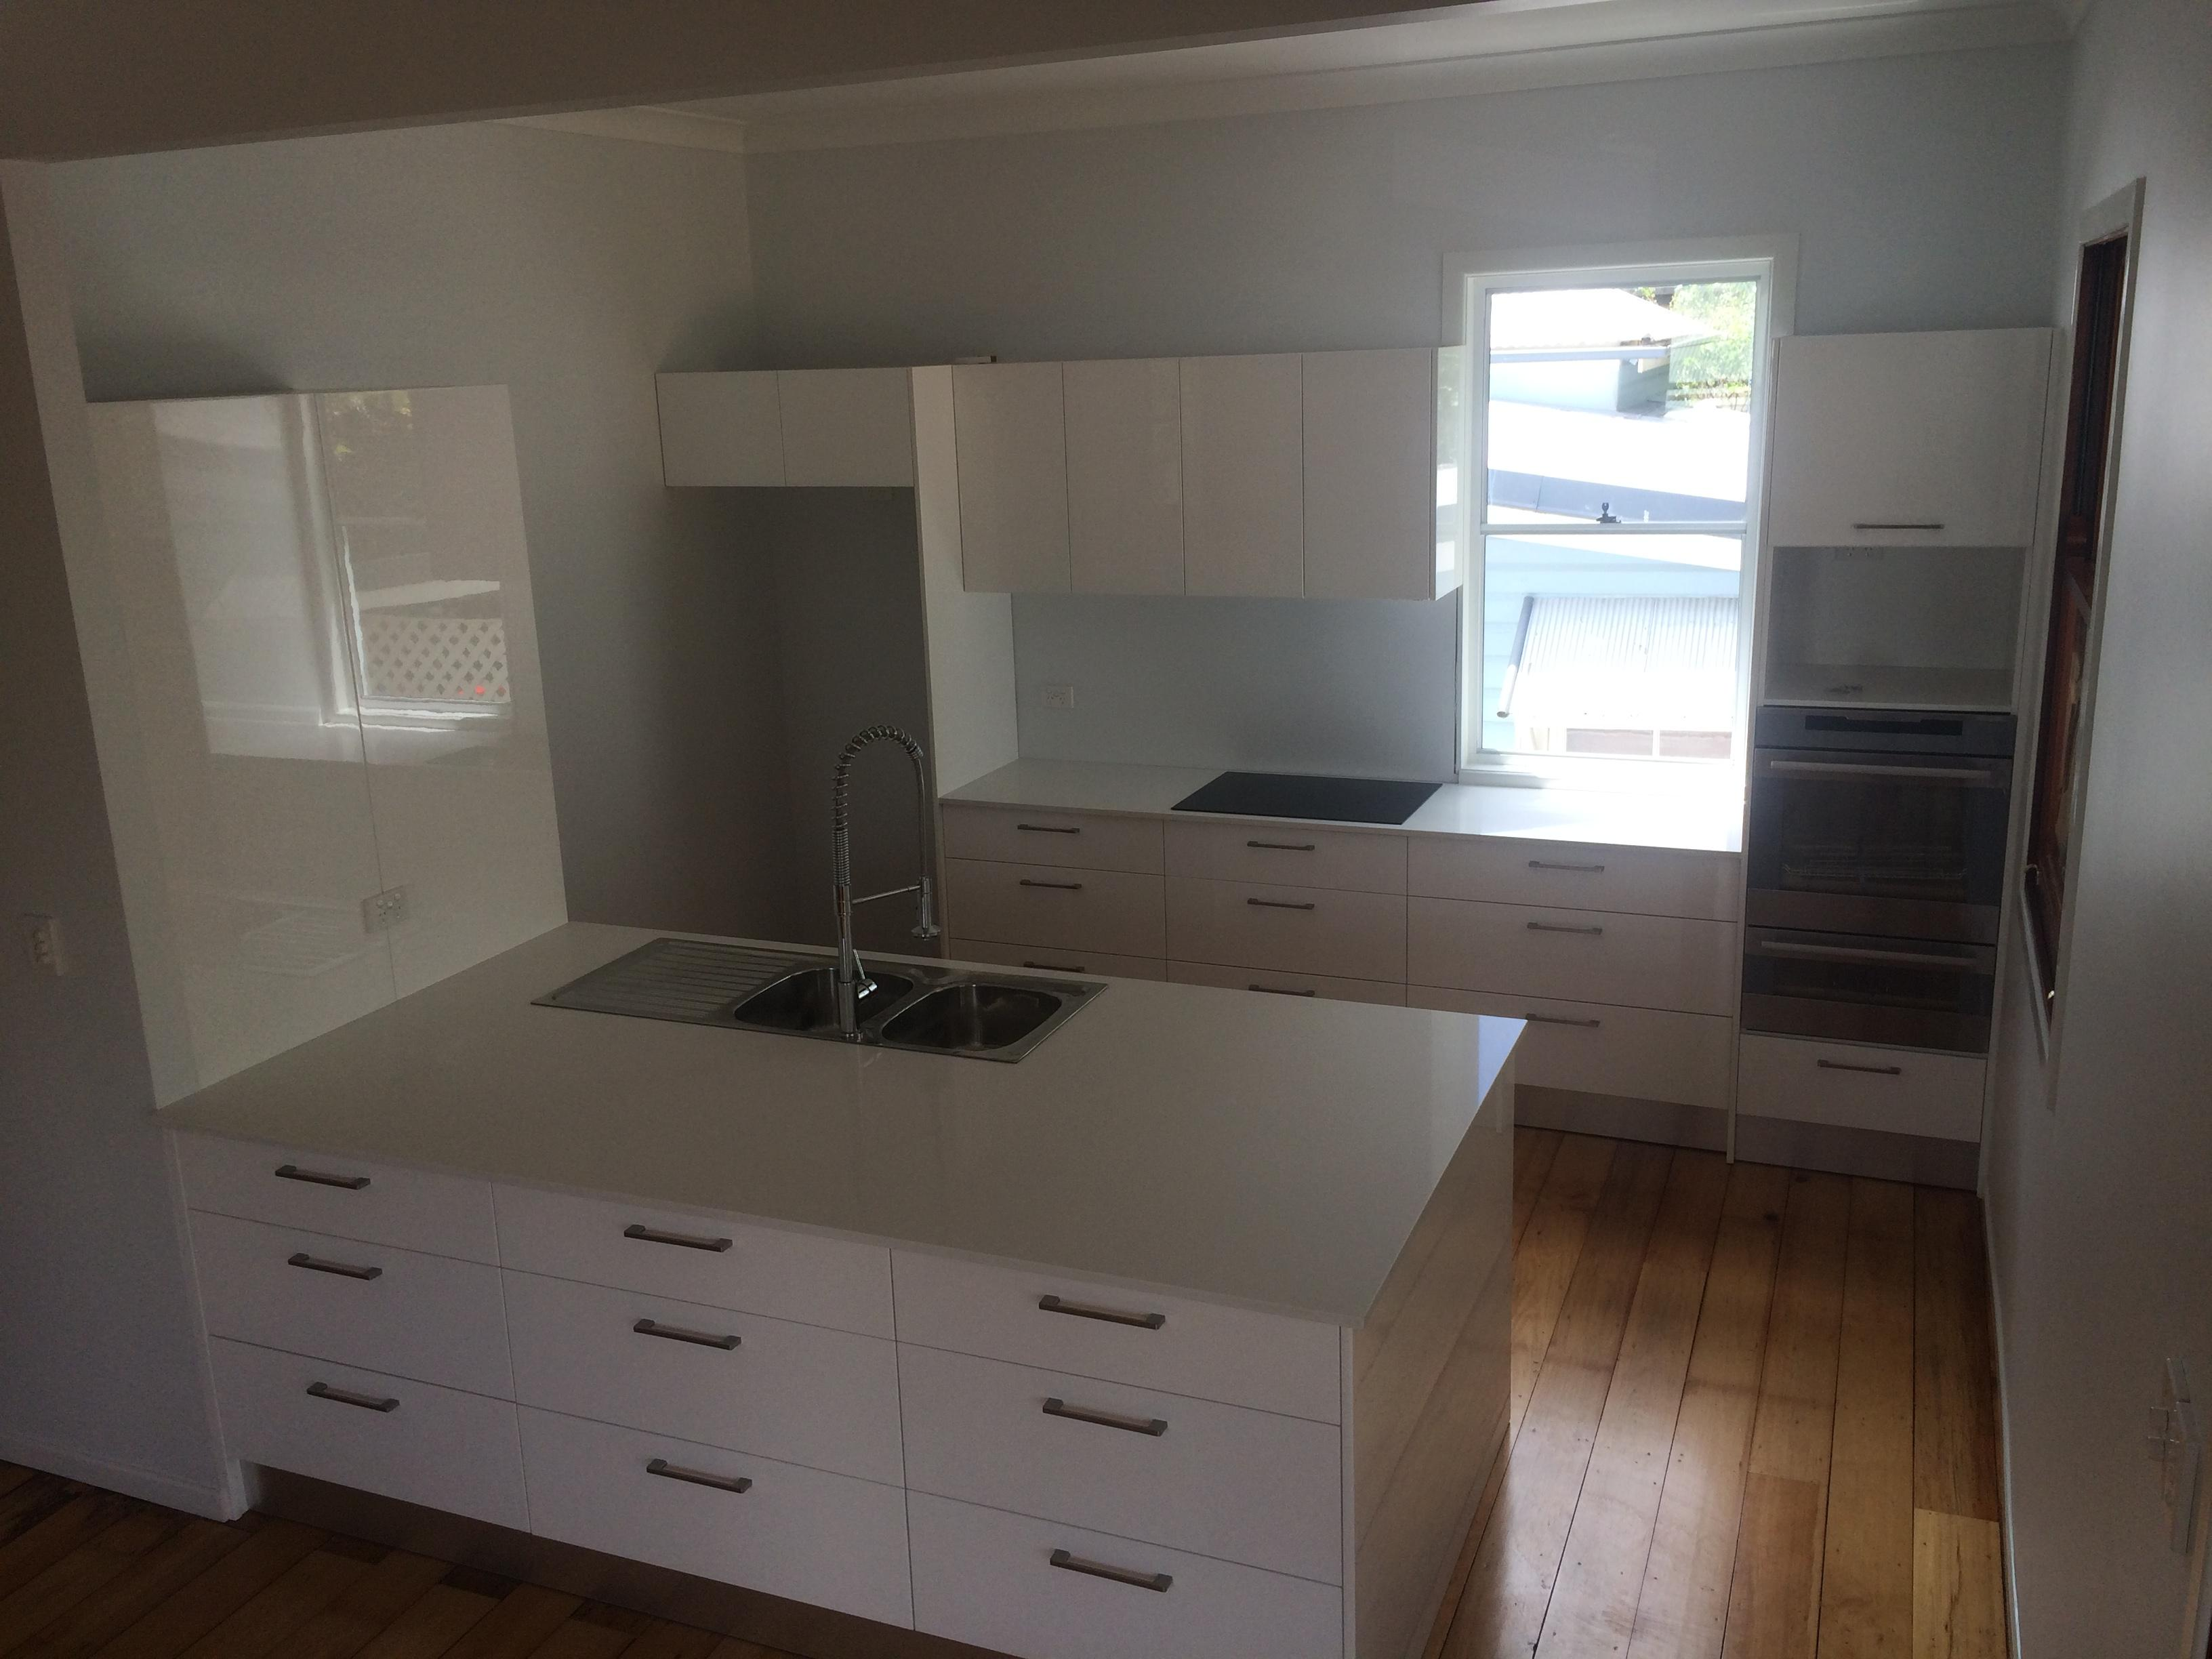 Kitchen Renovation Grange - Bishop Construction Services